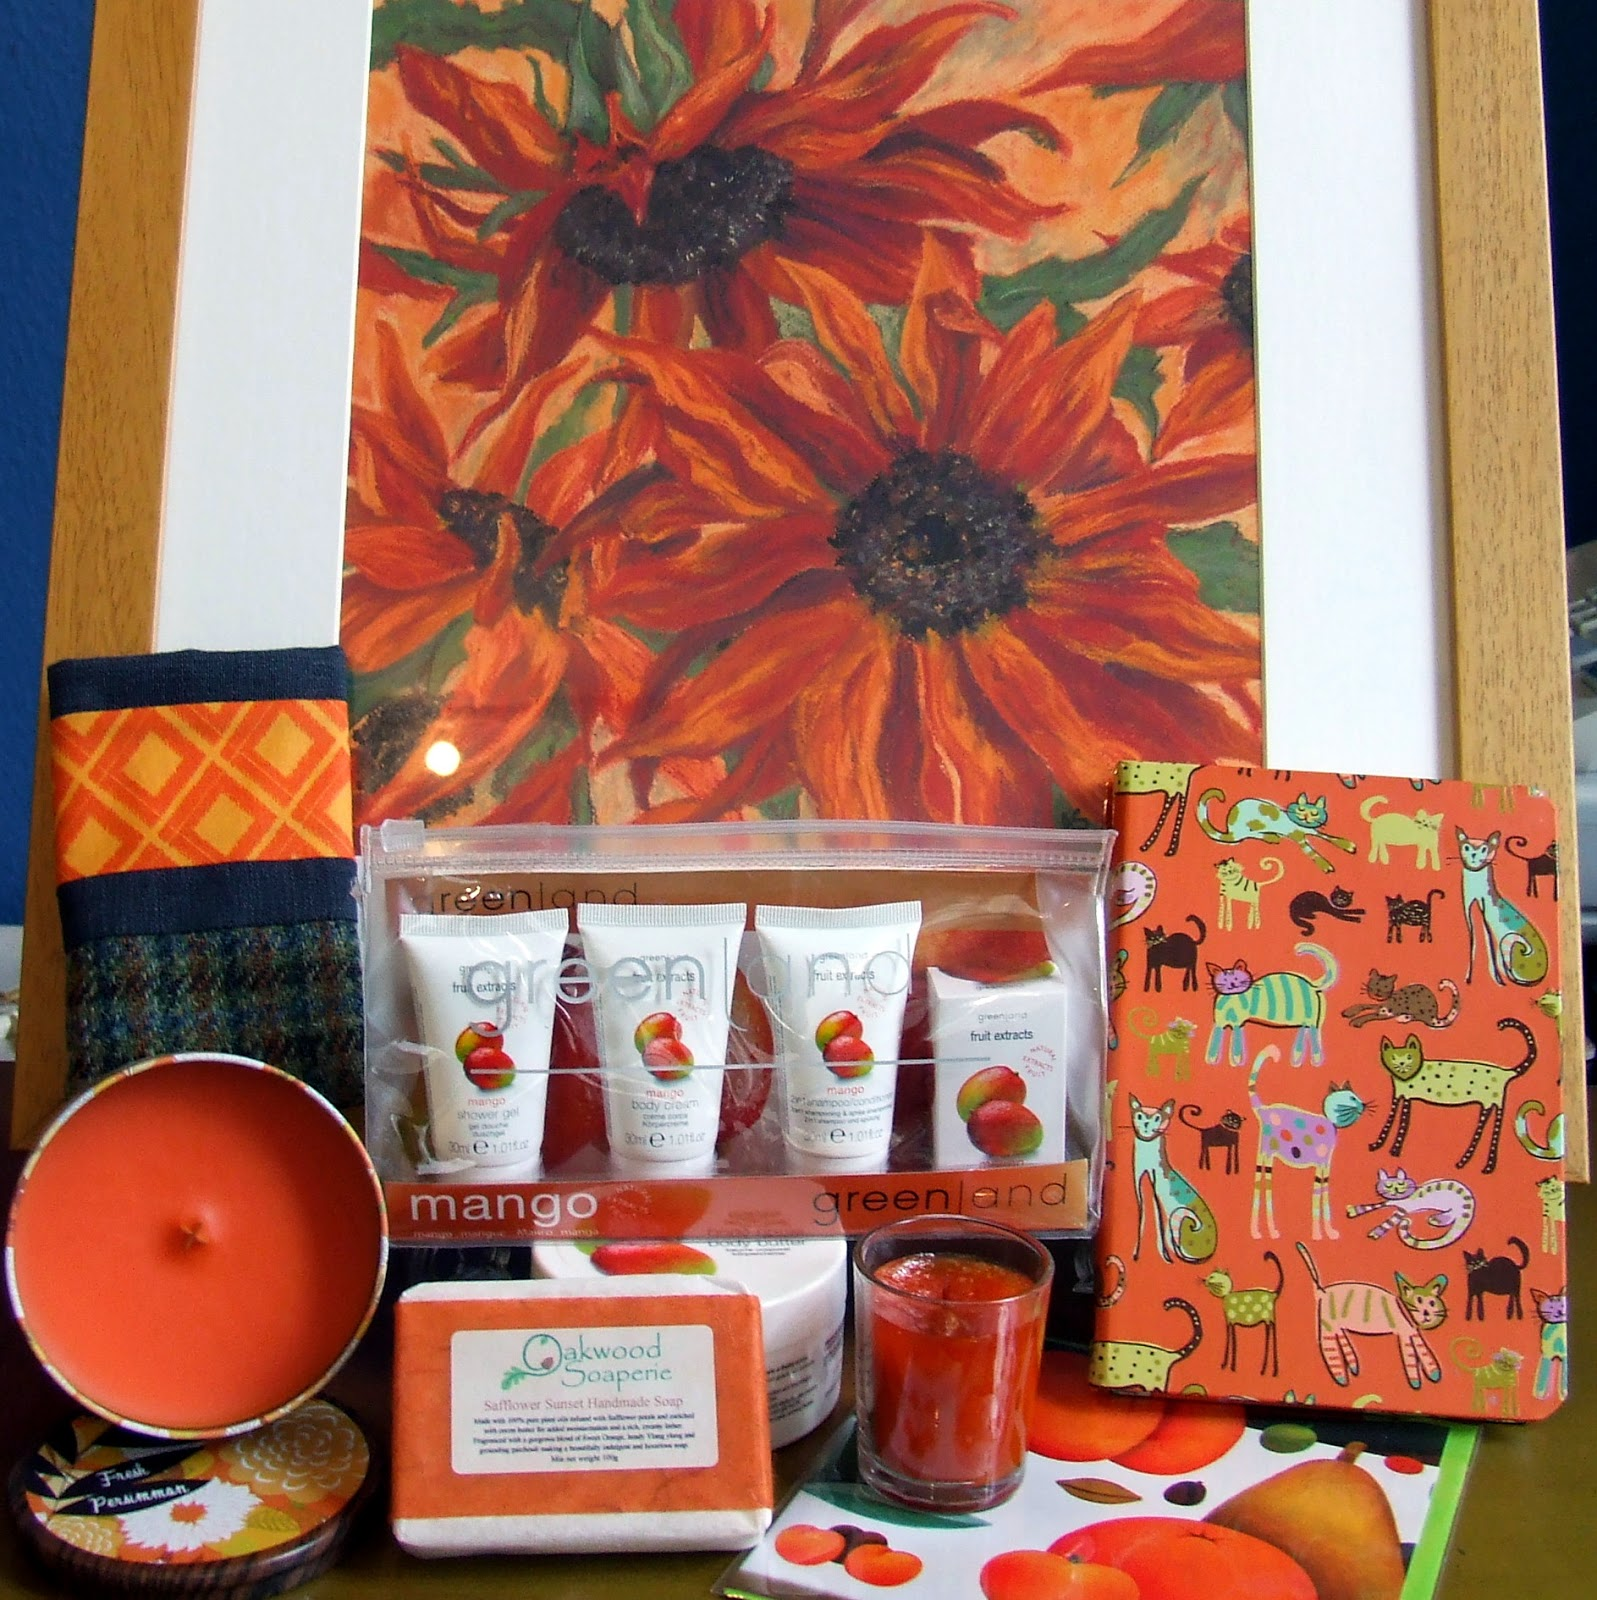 Selection of gifts in orange colour